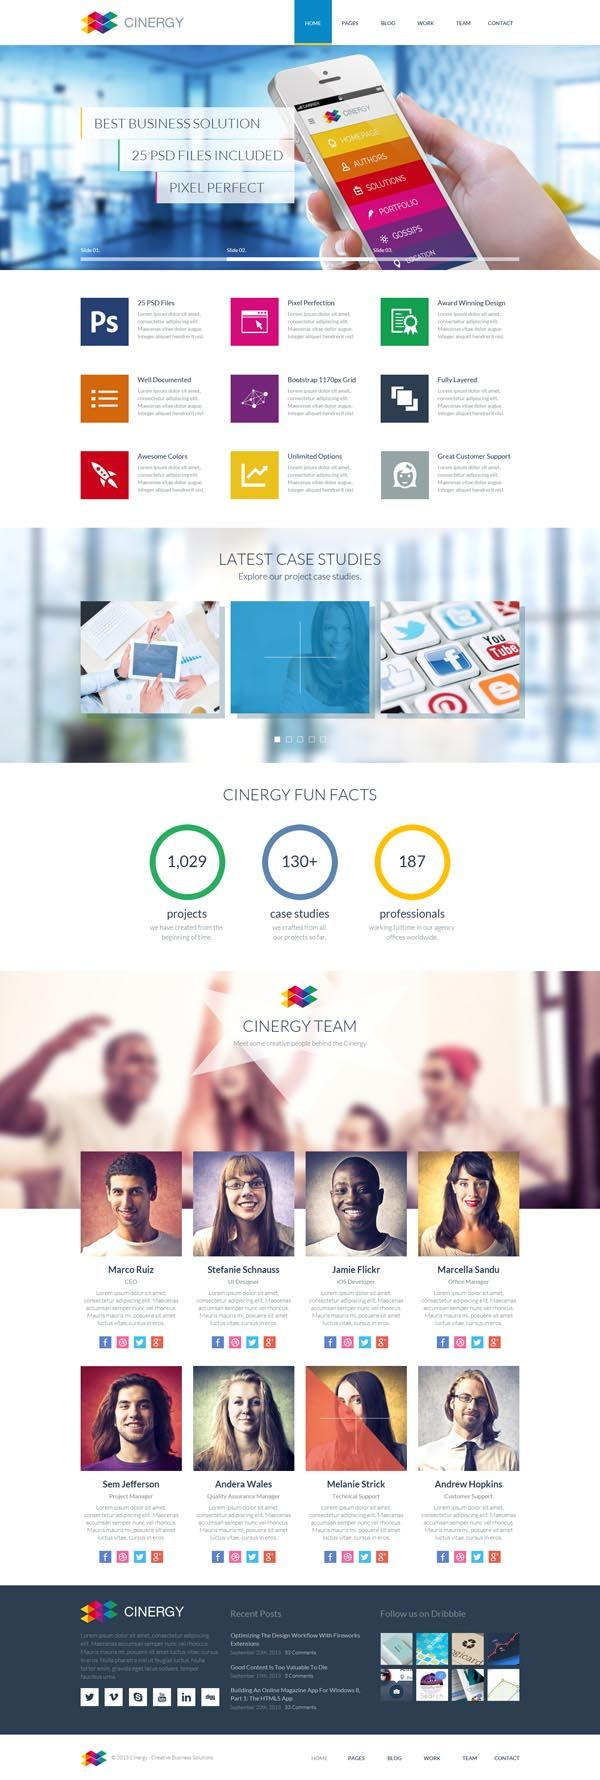 21 best Resumes images on Pinterest | Resume templates, Resume ...